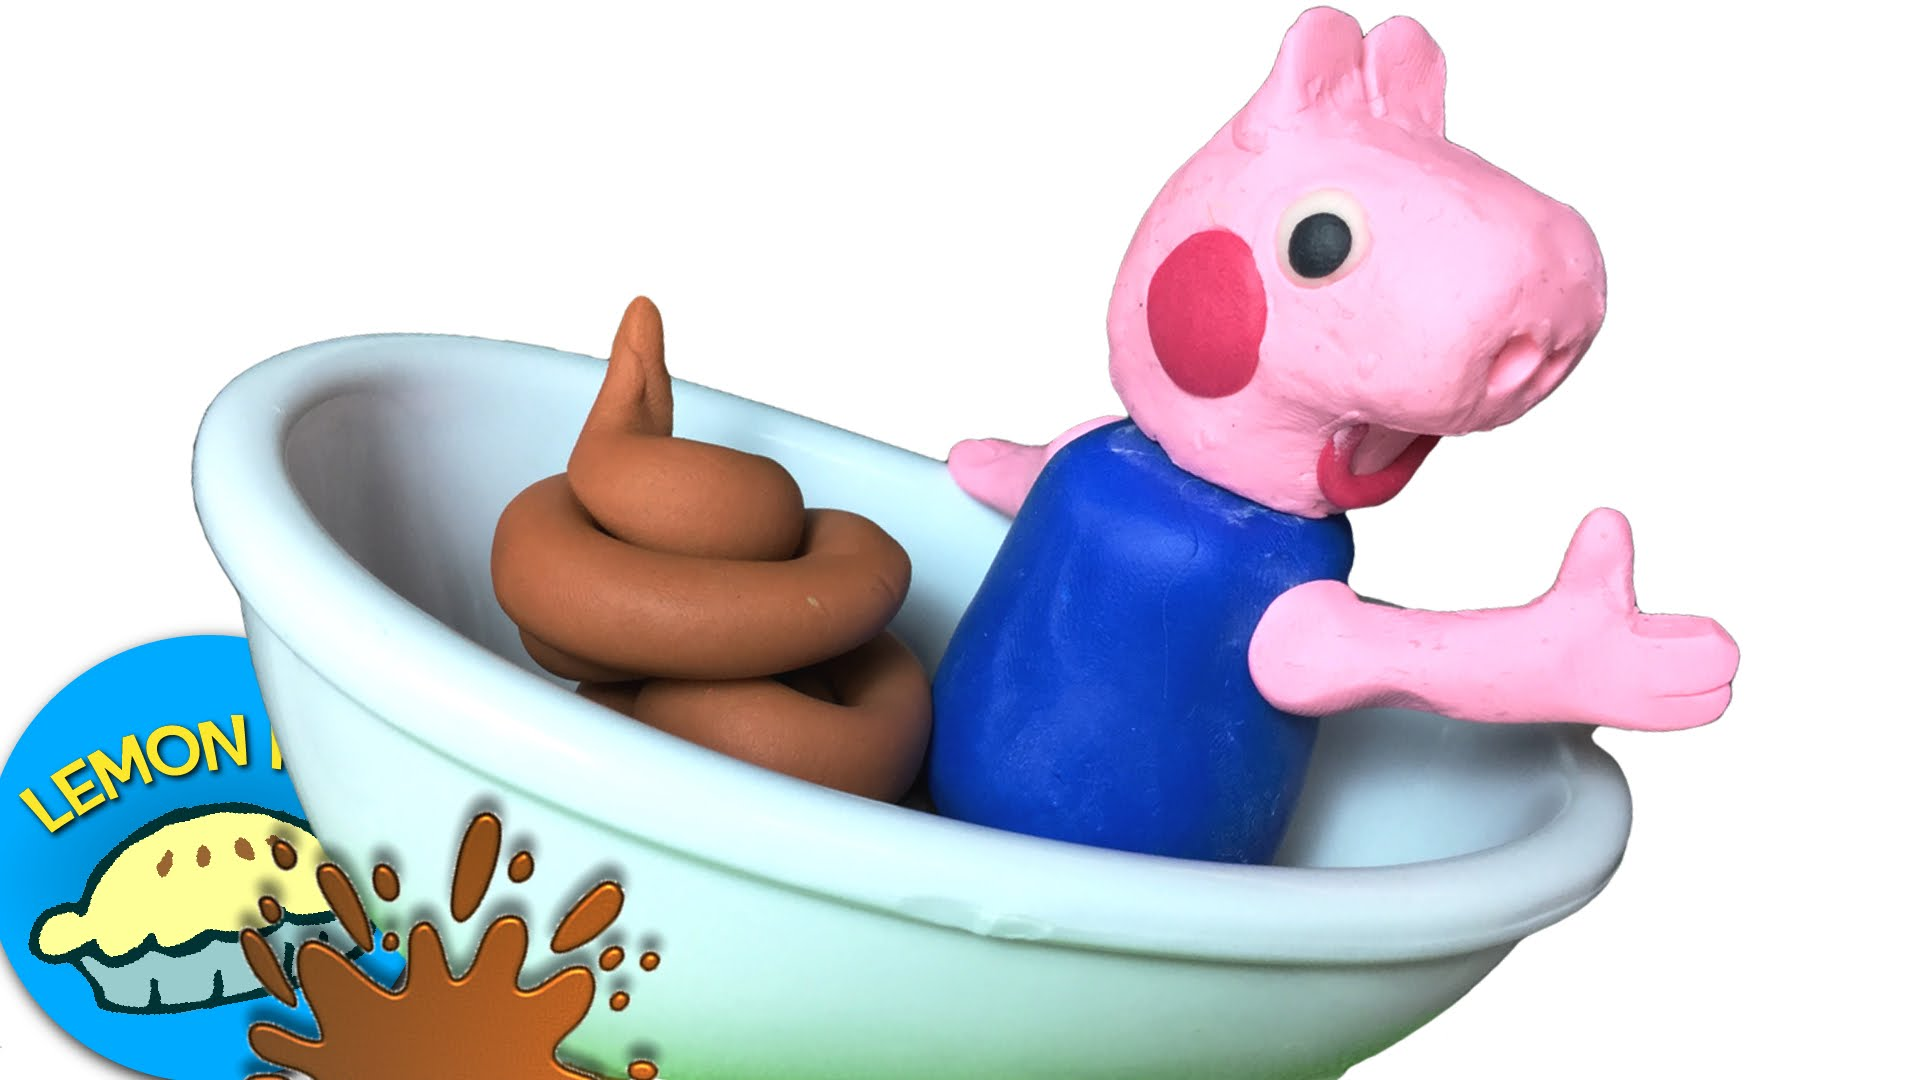 Peppa pig going potty clipart graphic black and white stock Peppa Pig Toilet Training George Poops in Bathtub Play - Clip Art ... graphic black and white stock